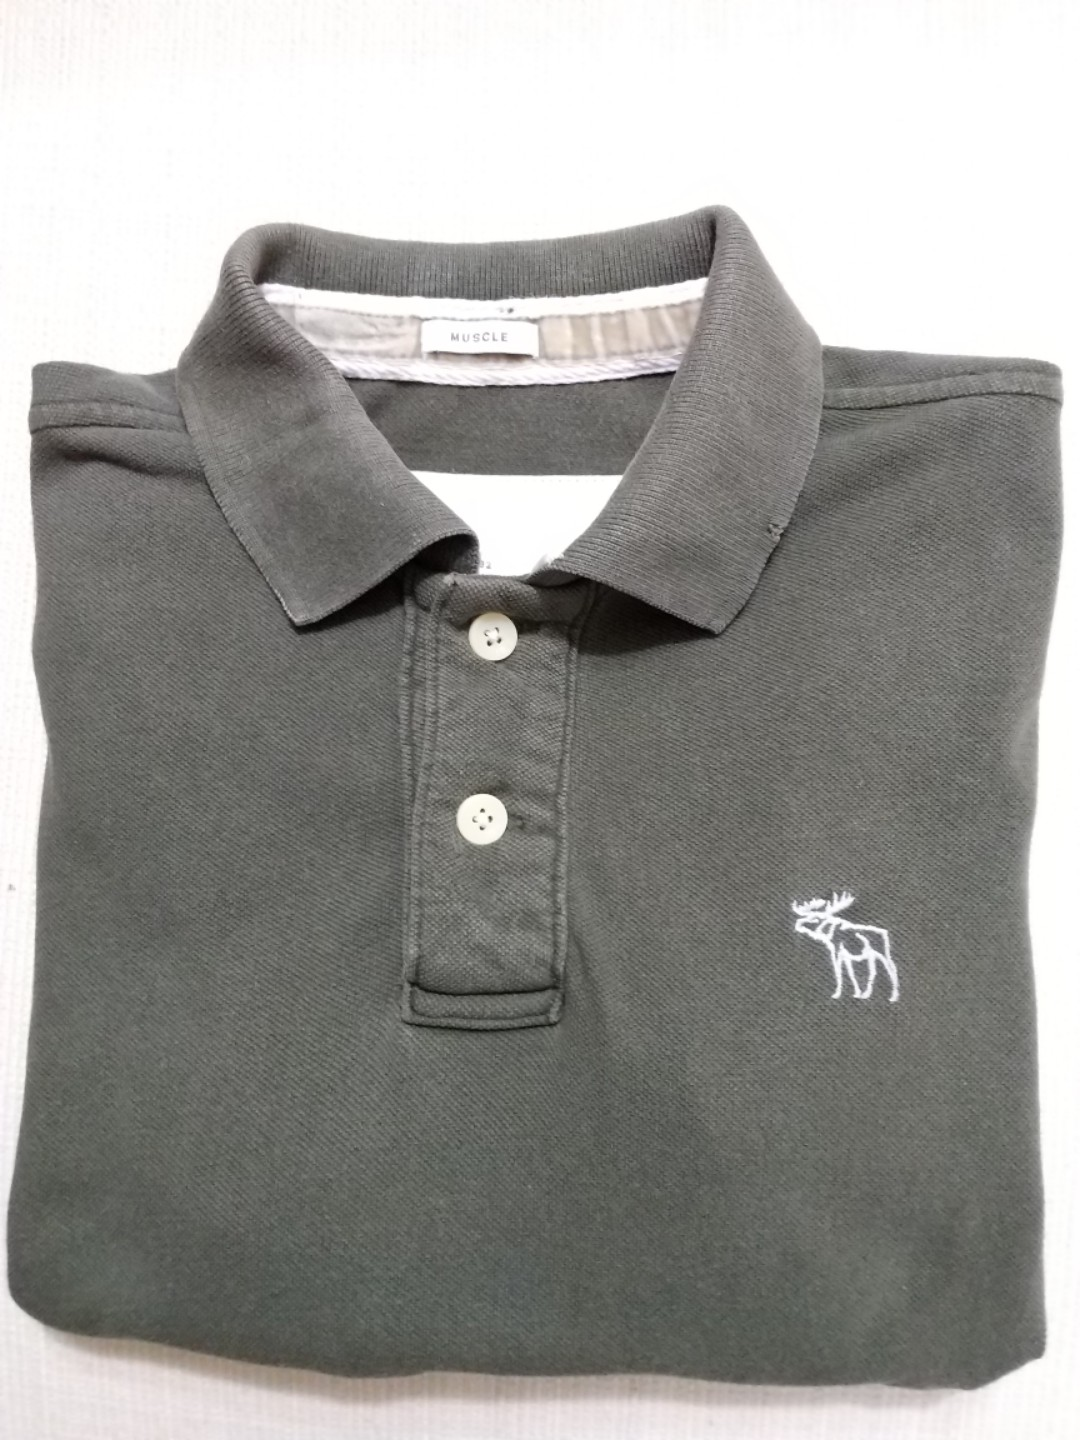 801224c9c 💯% Authentic Abercrombie & Fitch Polo tee (Muscle), Men's Fashion ...